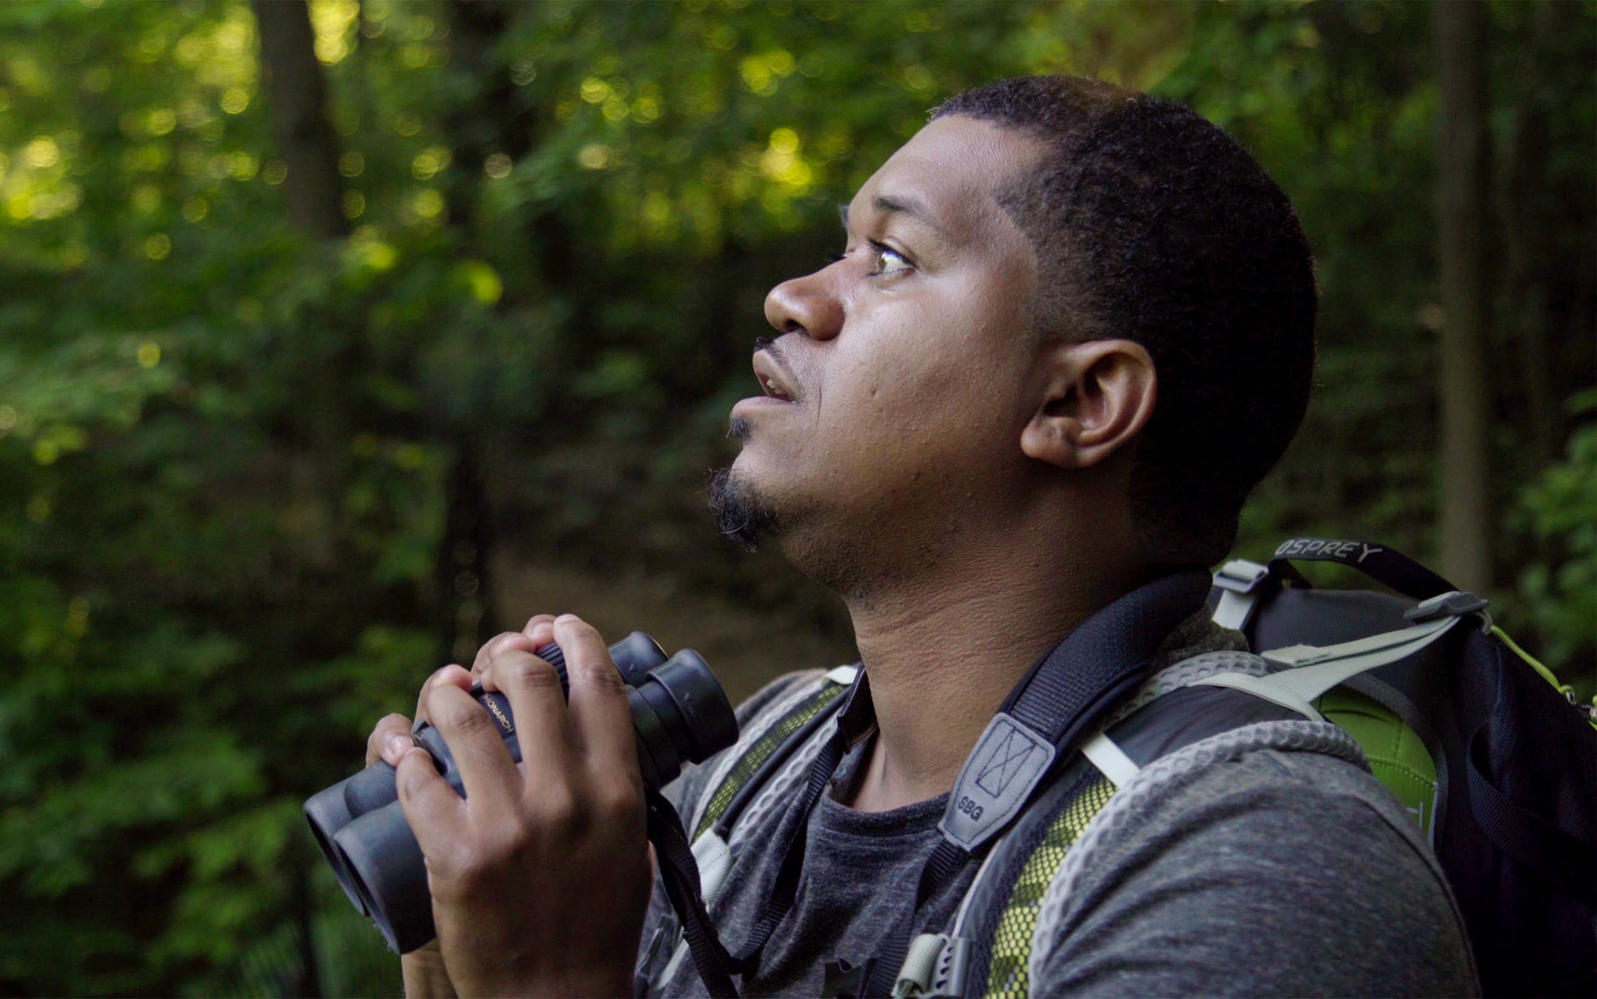 Birding While Black: Jason Ward On Central Park Video, Racism And His Passion For Birds